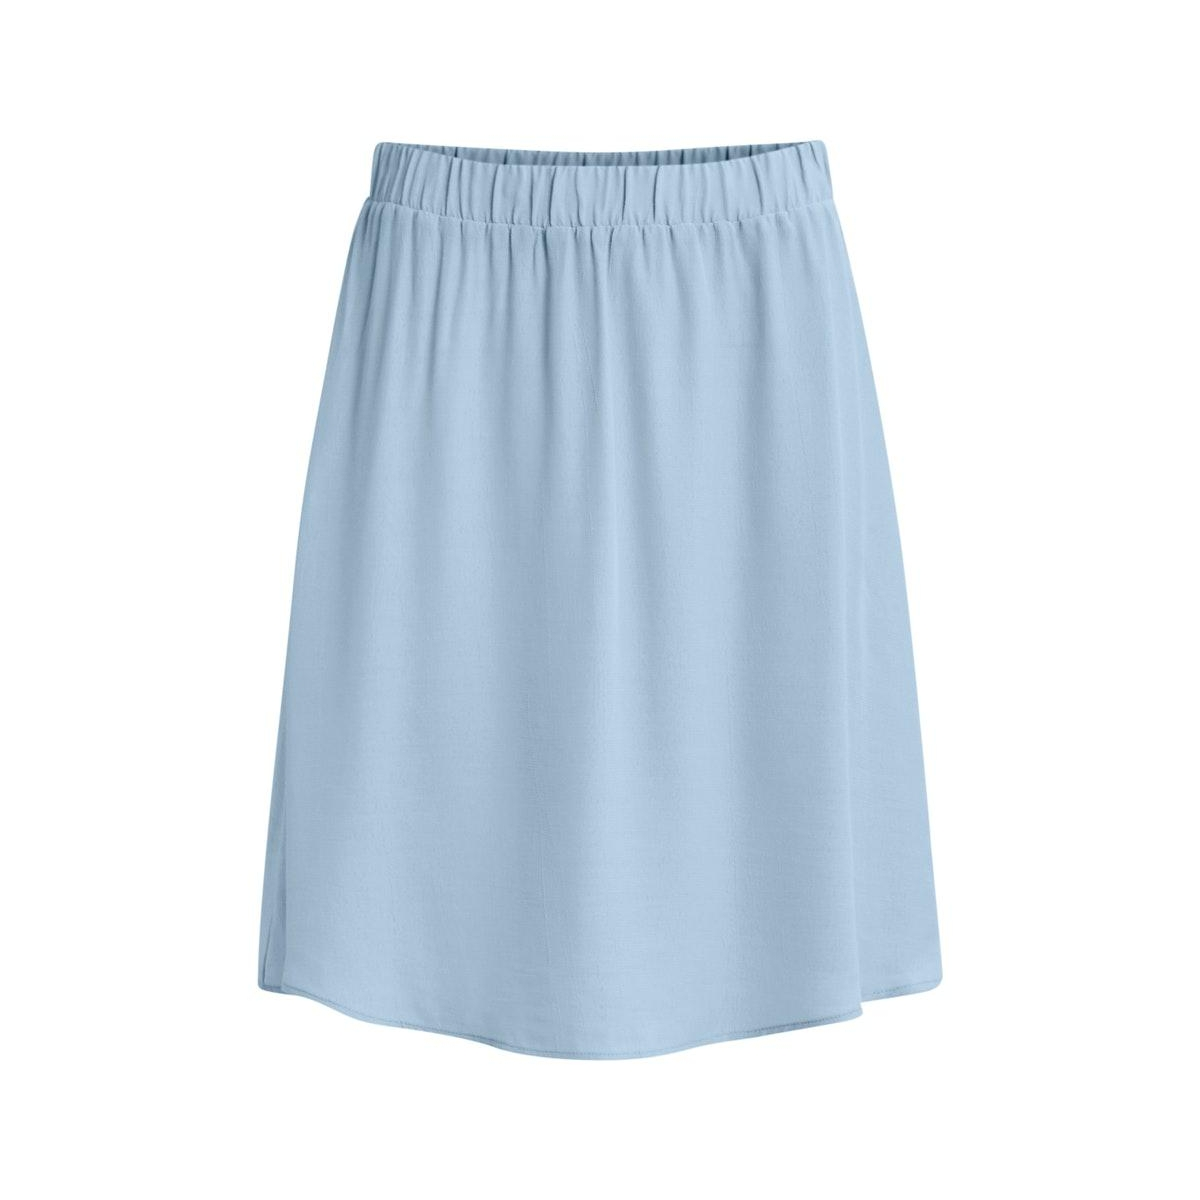 viprimera skirt-fav 14057532 vila rok ashley blue